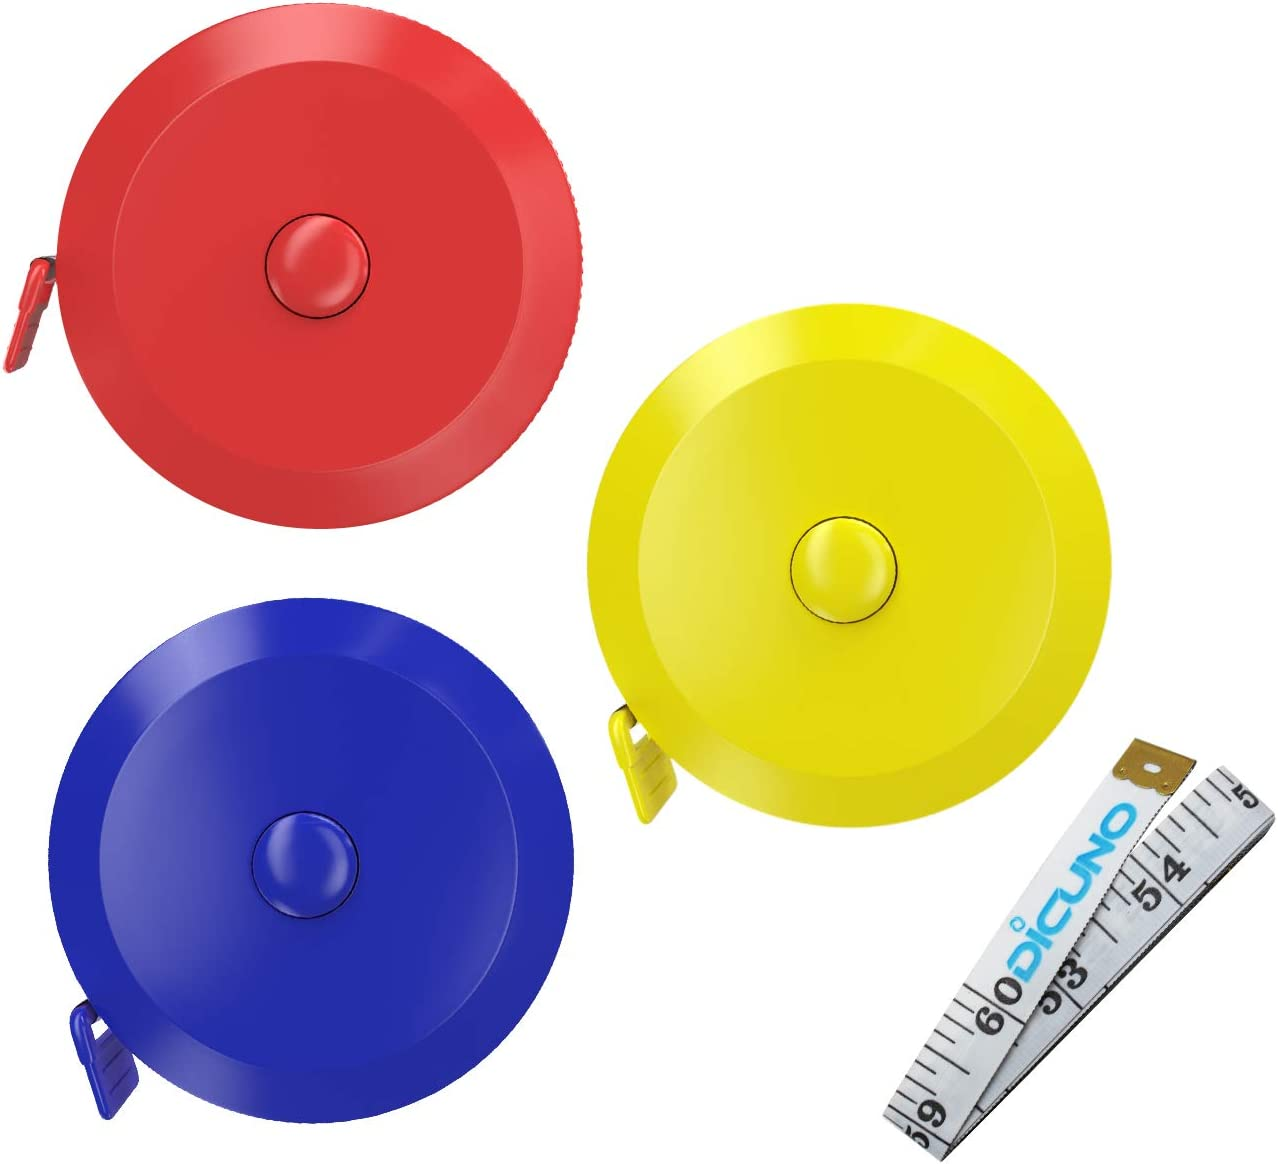 Tape Measure Measuring Tape 1.5m//60inch Black Tape Measures Dual Sided Retractable Tools Automatic ABS Flexible Mini Sewing Measuring Tape